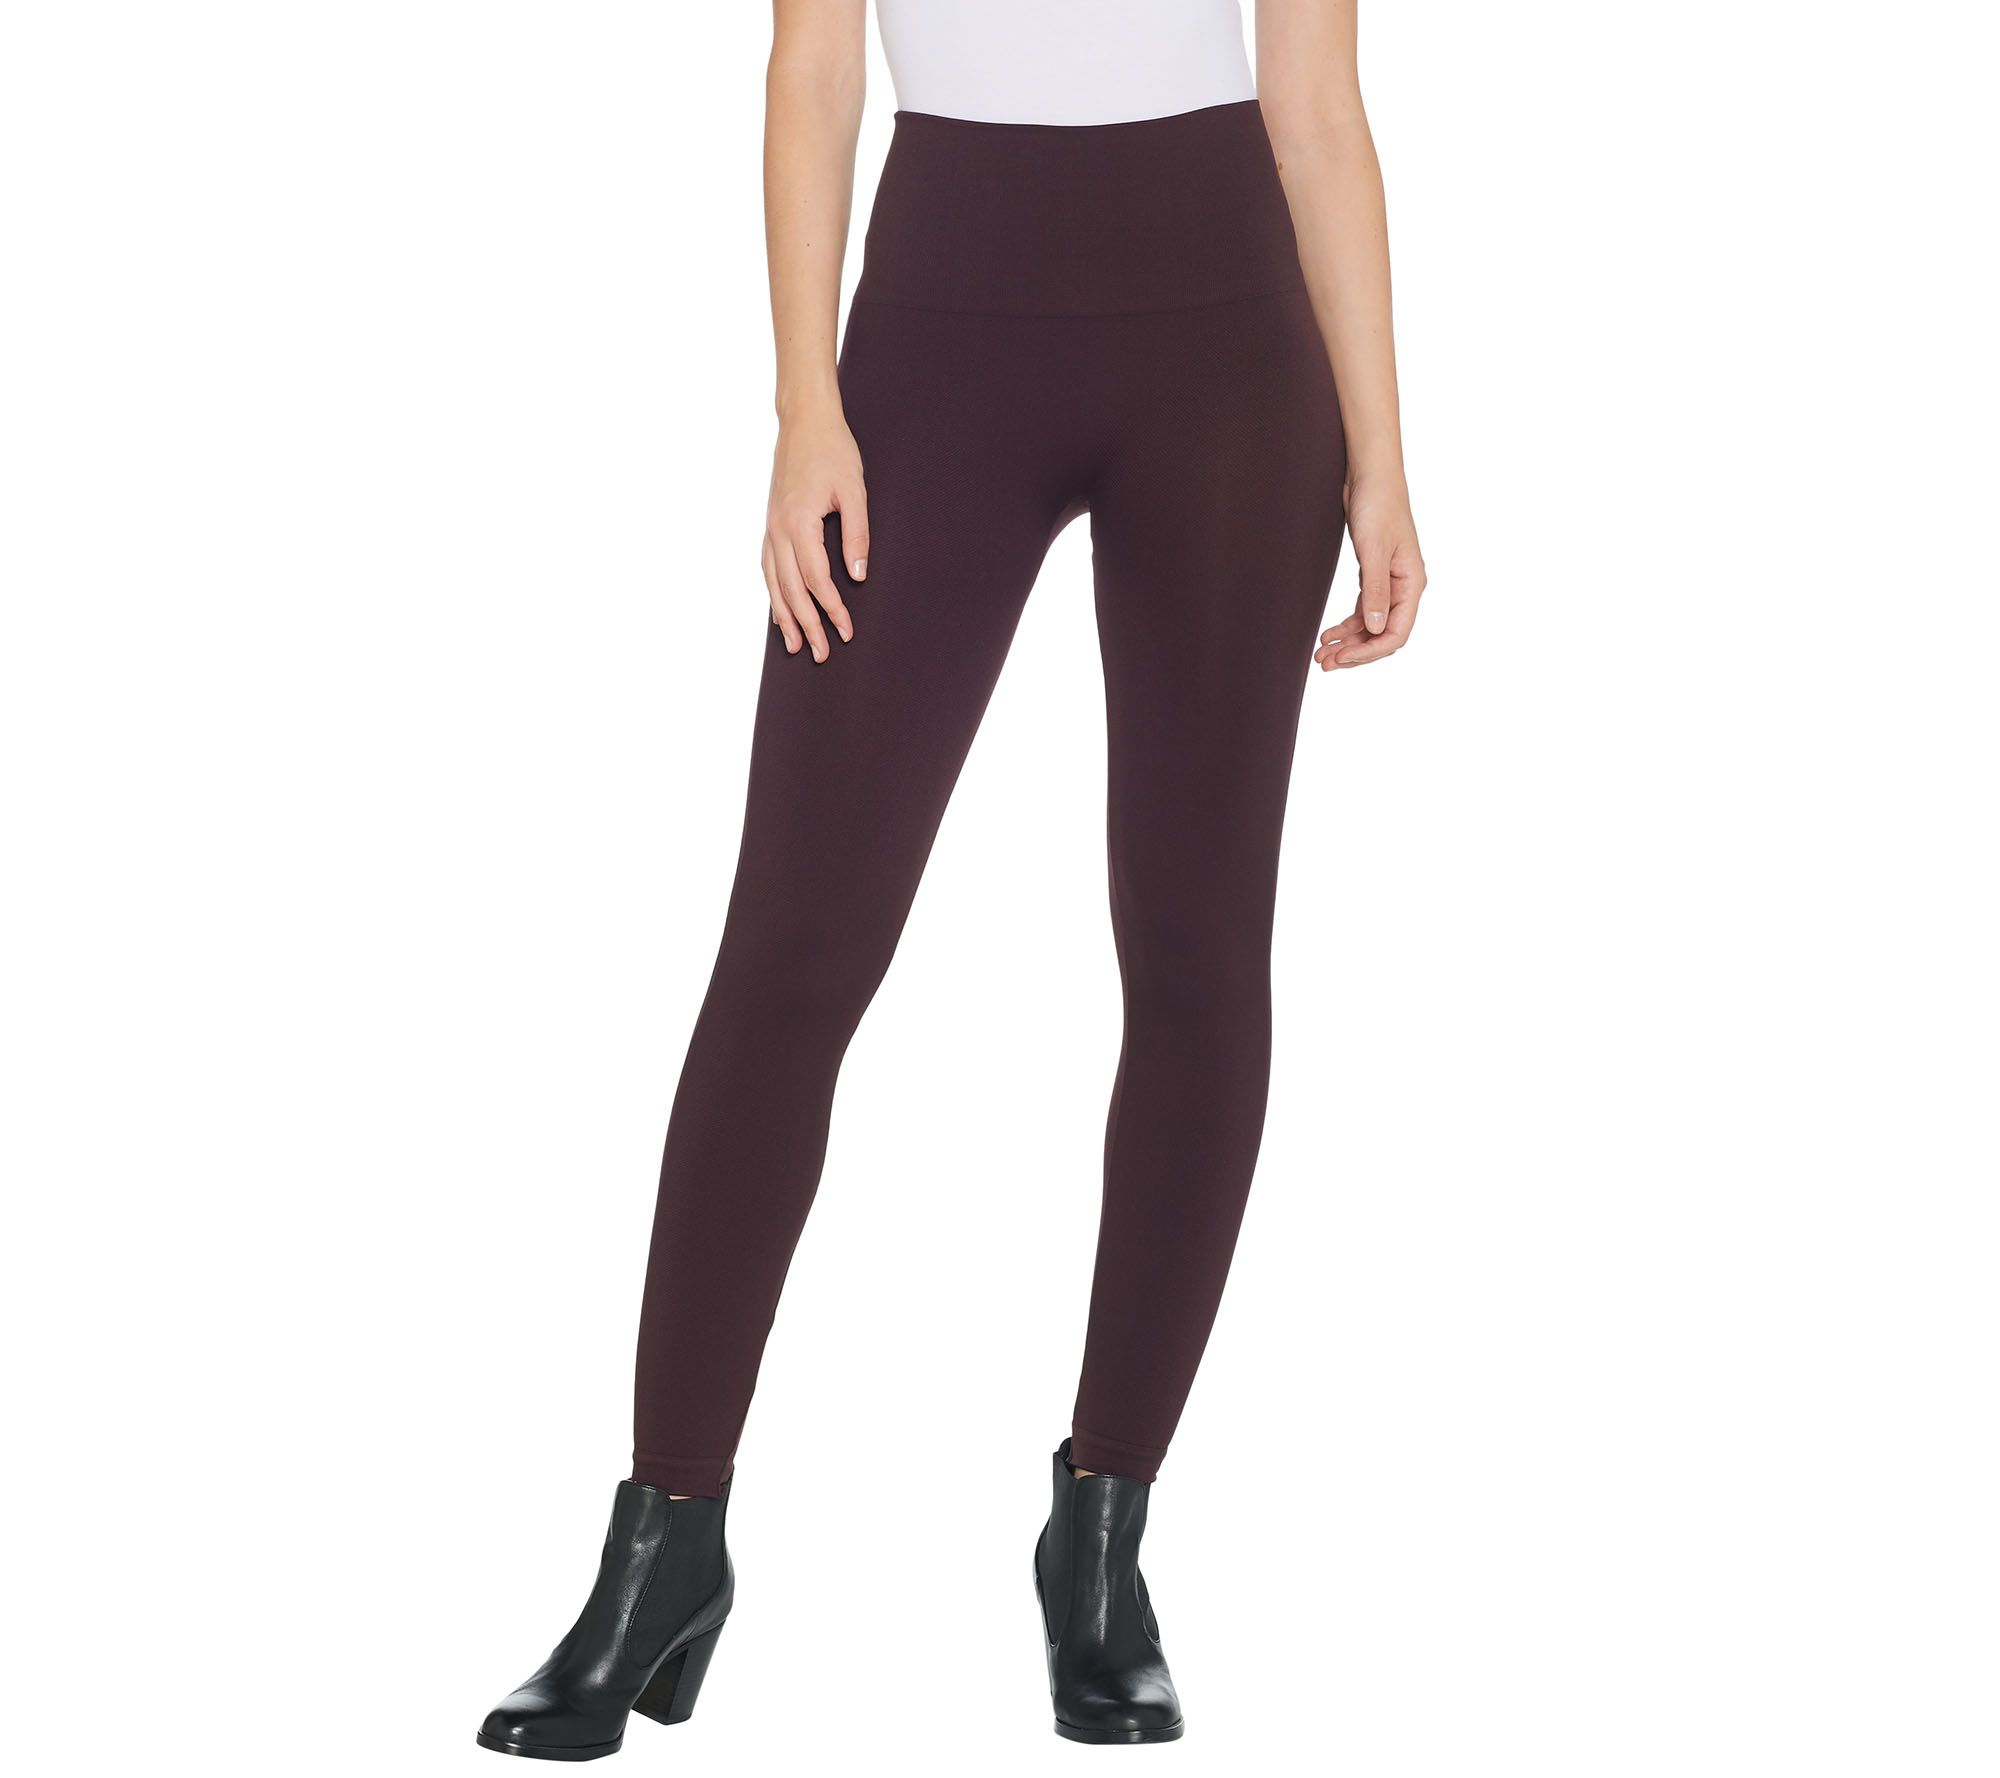 3d40f3ba67b4 Spanx Look at Me Now Seamless Leggings - Page 1 — QVC.com